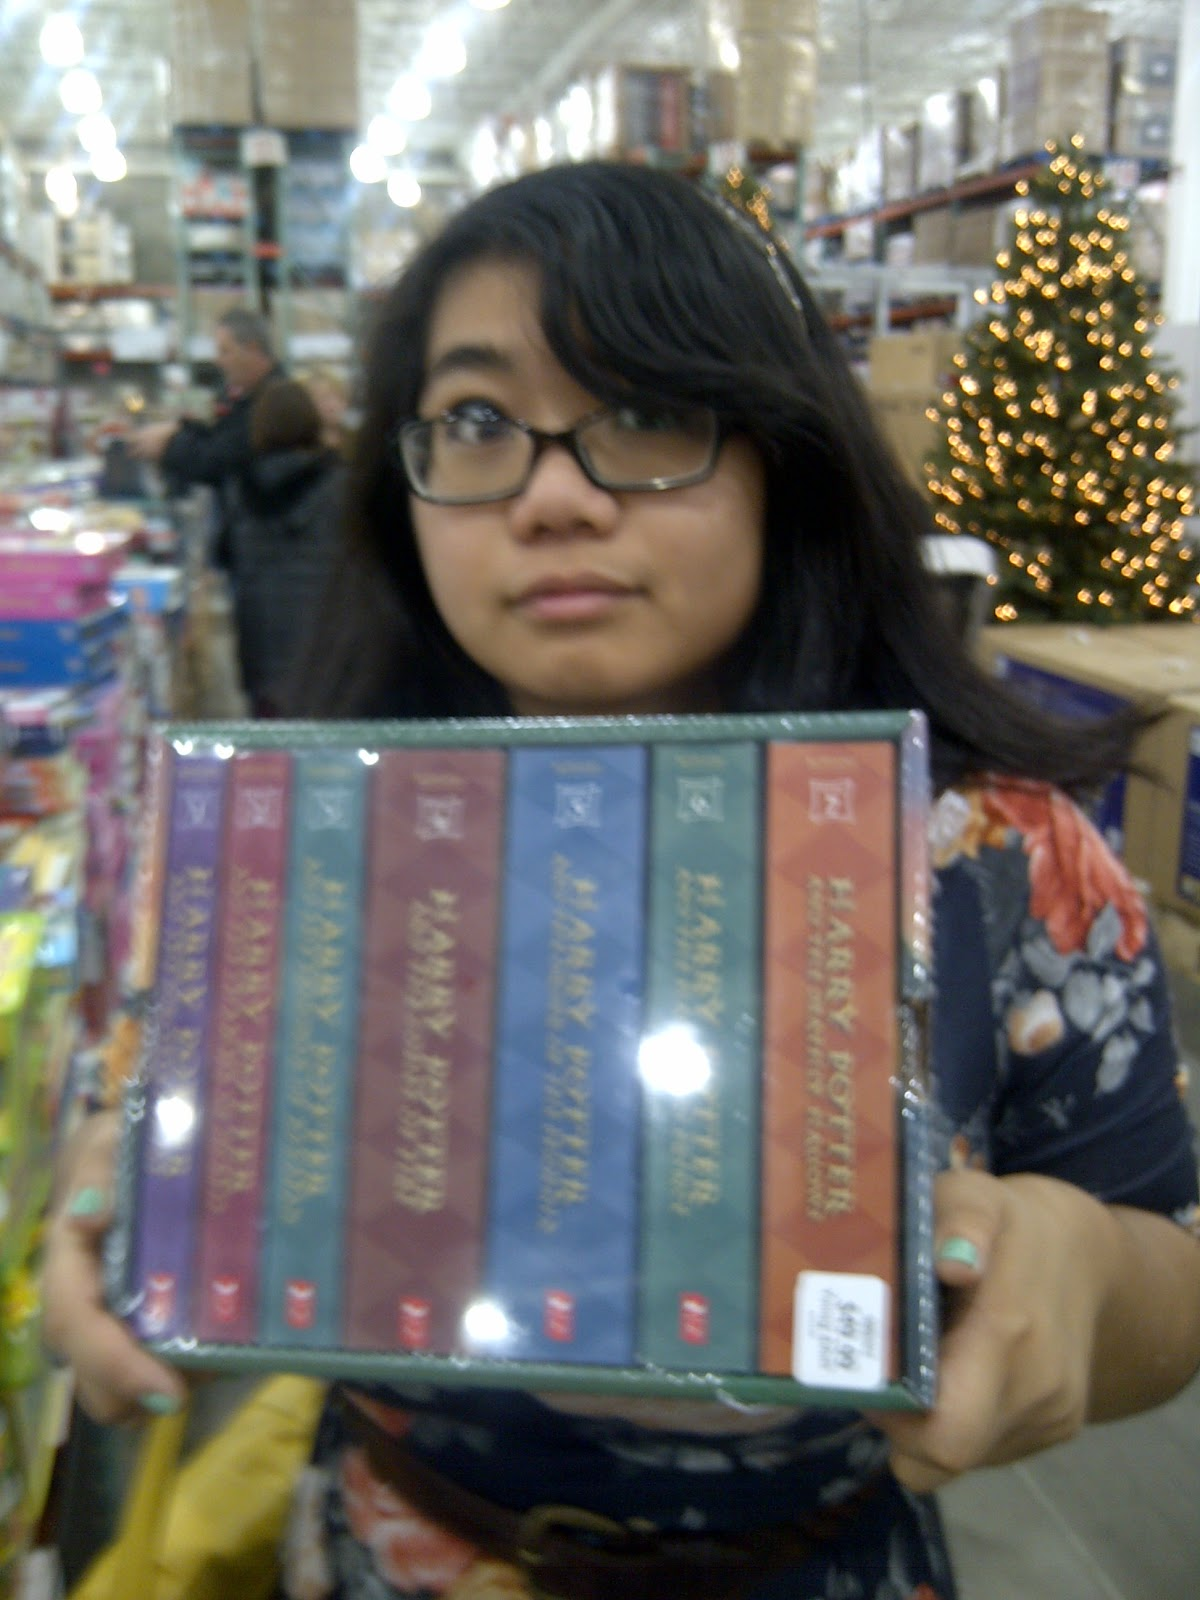 Harry Potter Book Set Costco : Words and rhymes notes all the things i wish wrote